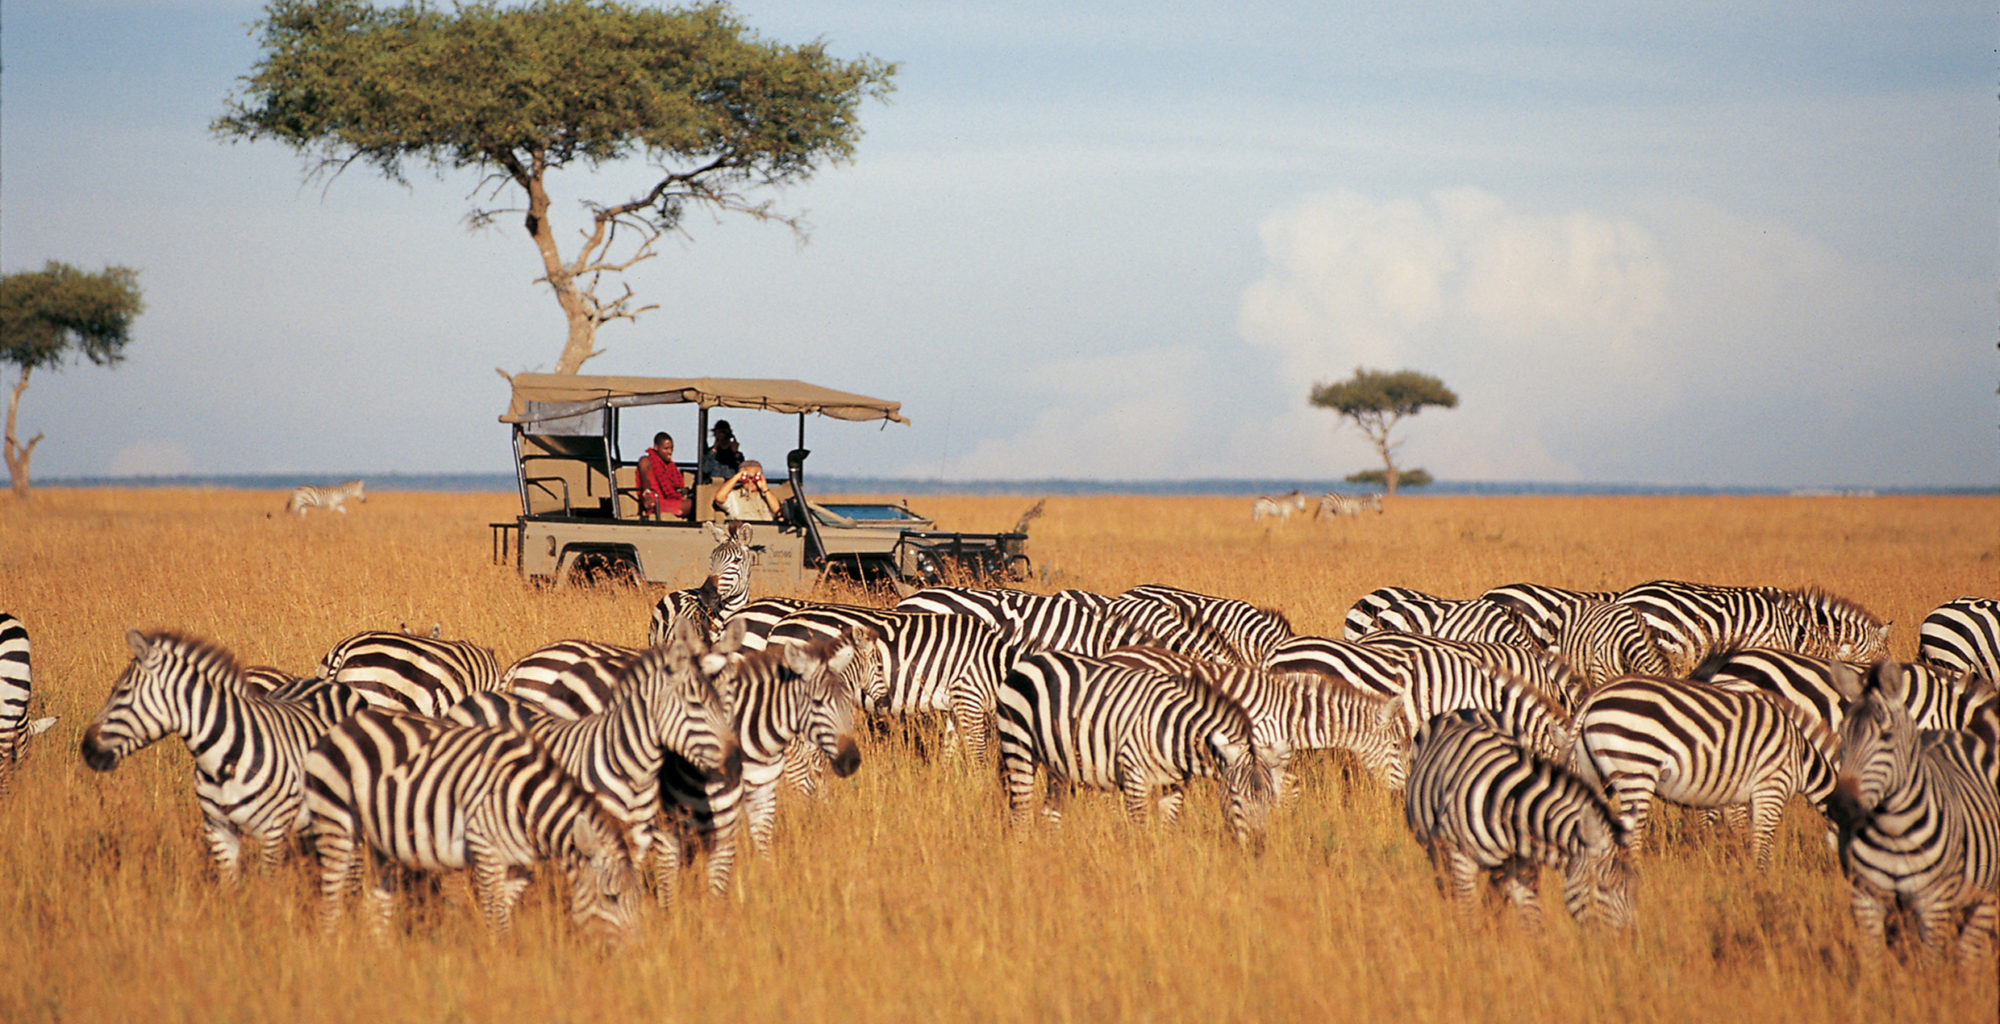 Kenya-Samburu-National-Reserve-Game-Drive-Zebra